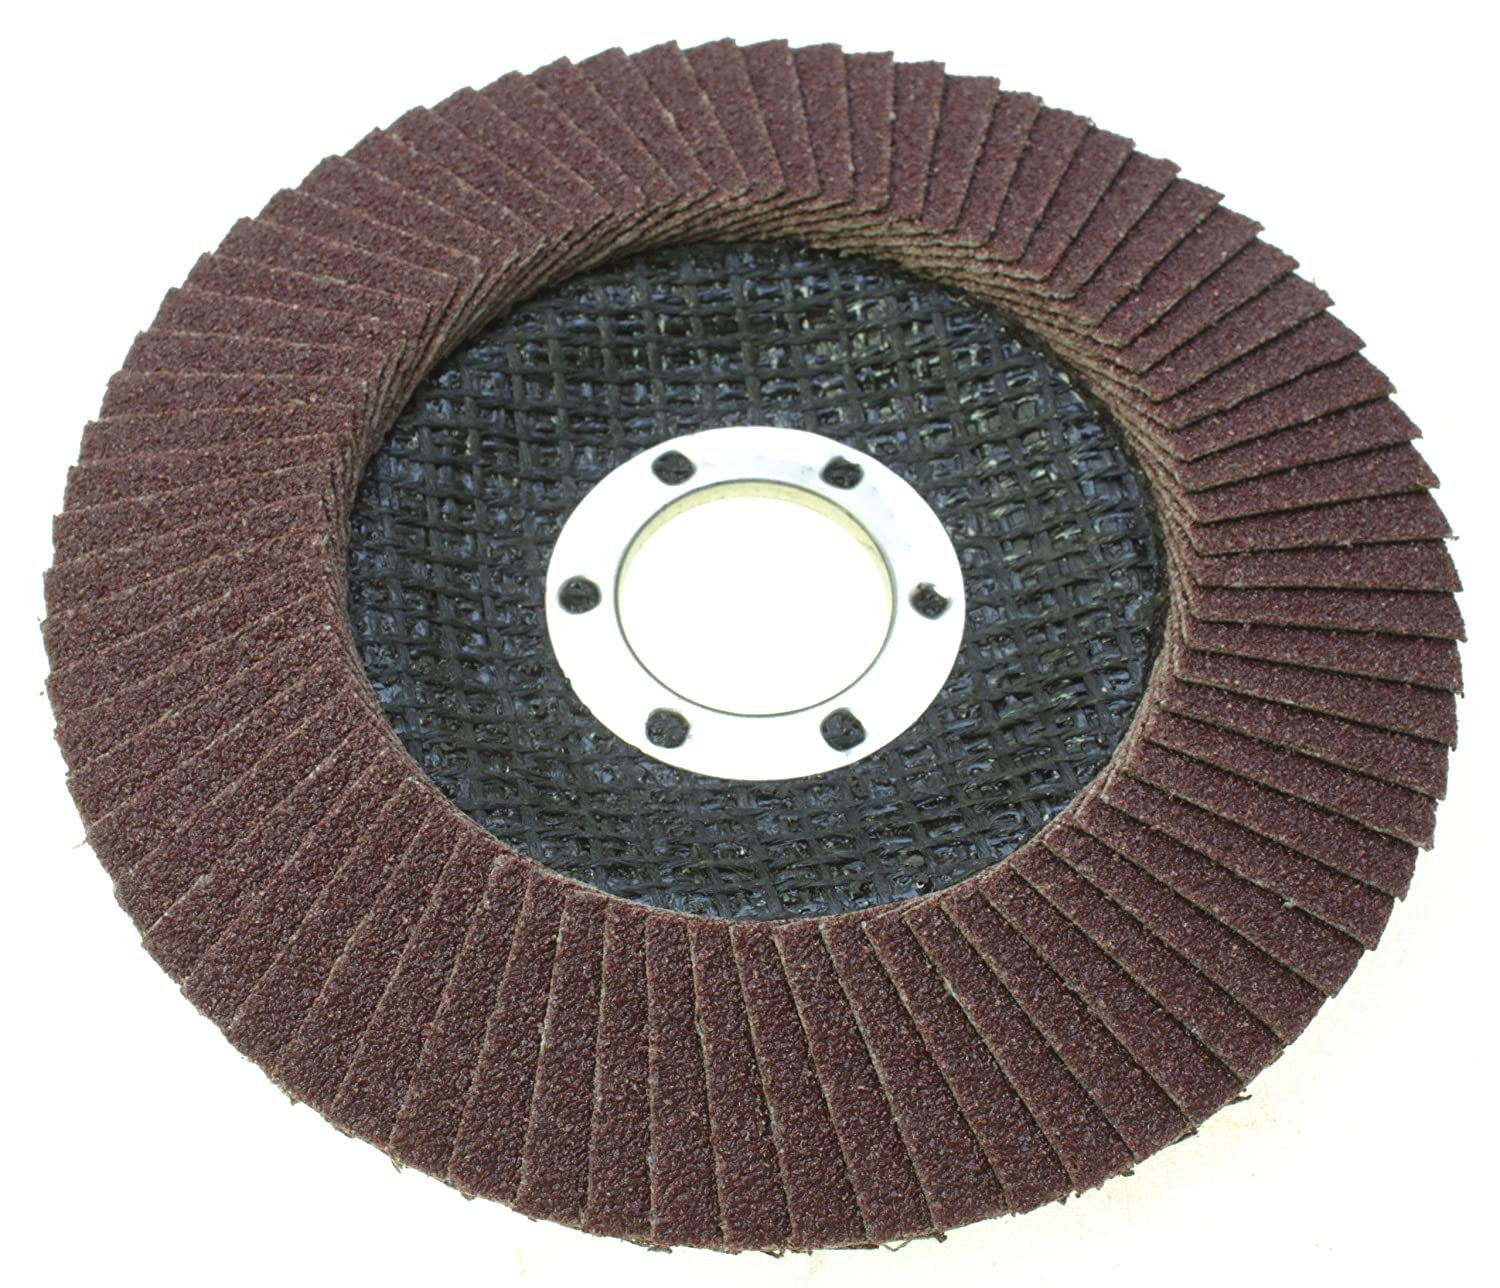 Toolzone 115mm (4-1/2') Angle Grinder Sanding Flap Disc Wheel 80 Grit